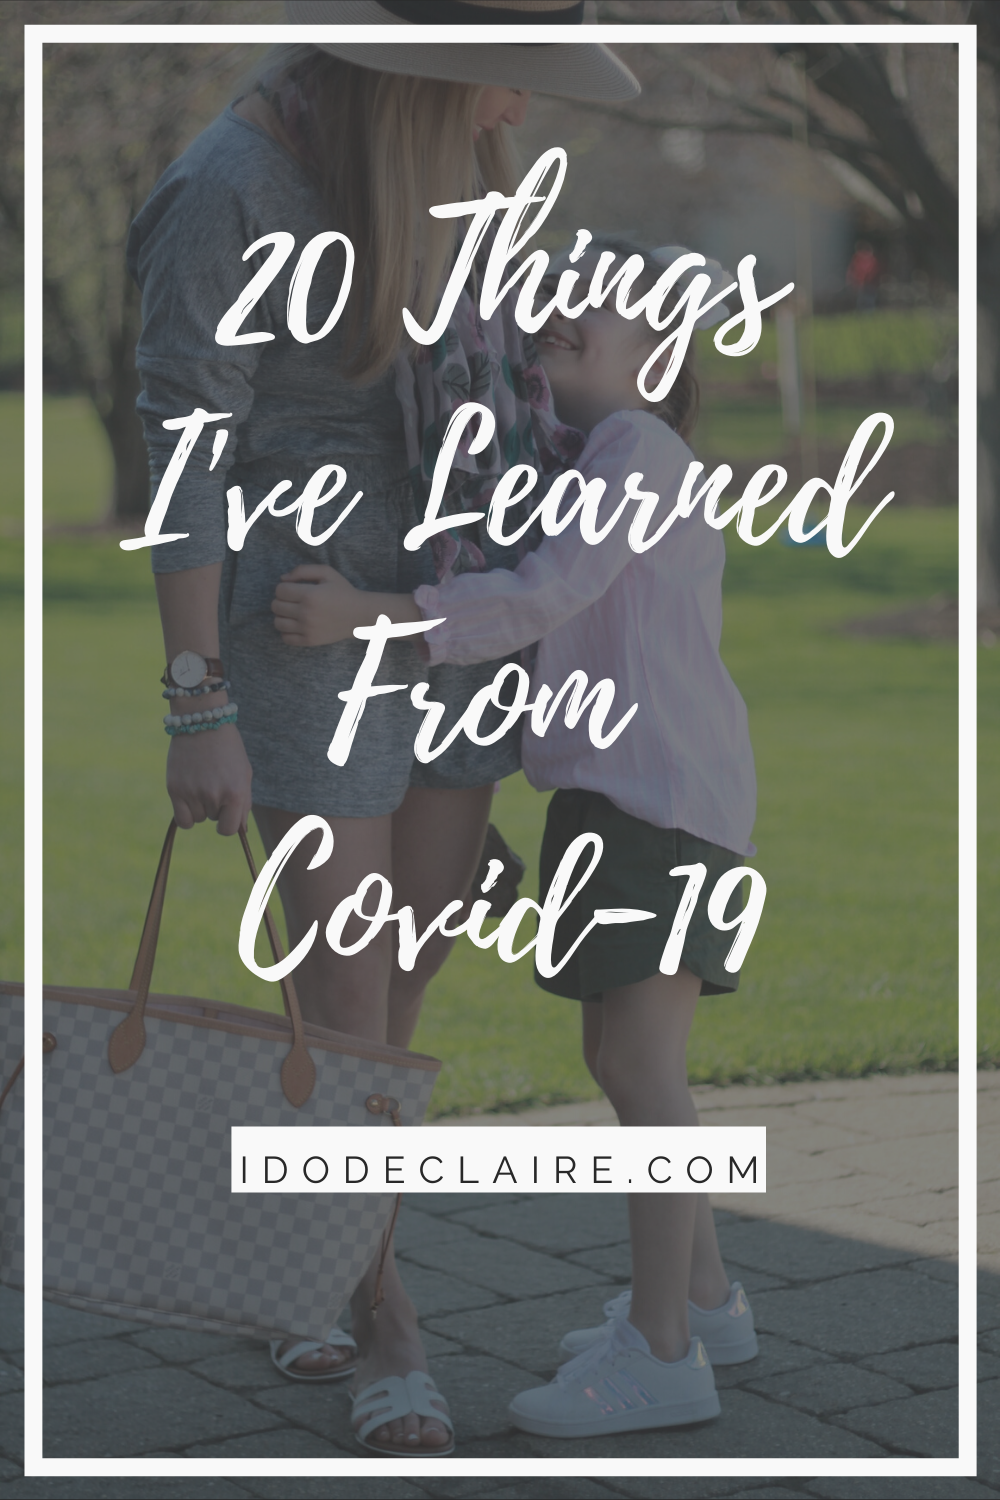 20 Things I've Learned From Covid-19